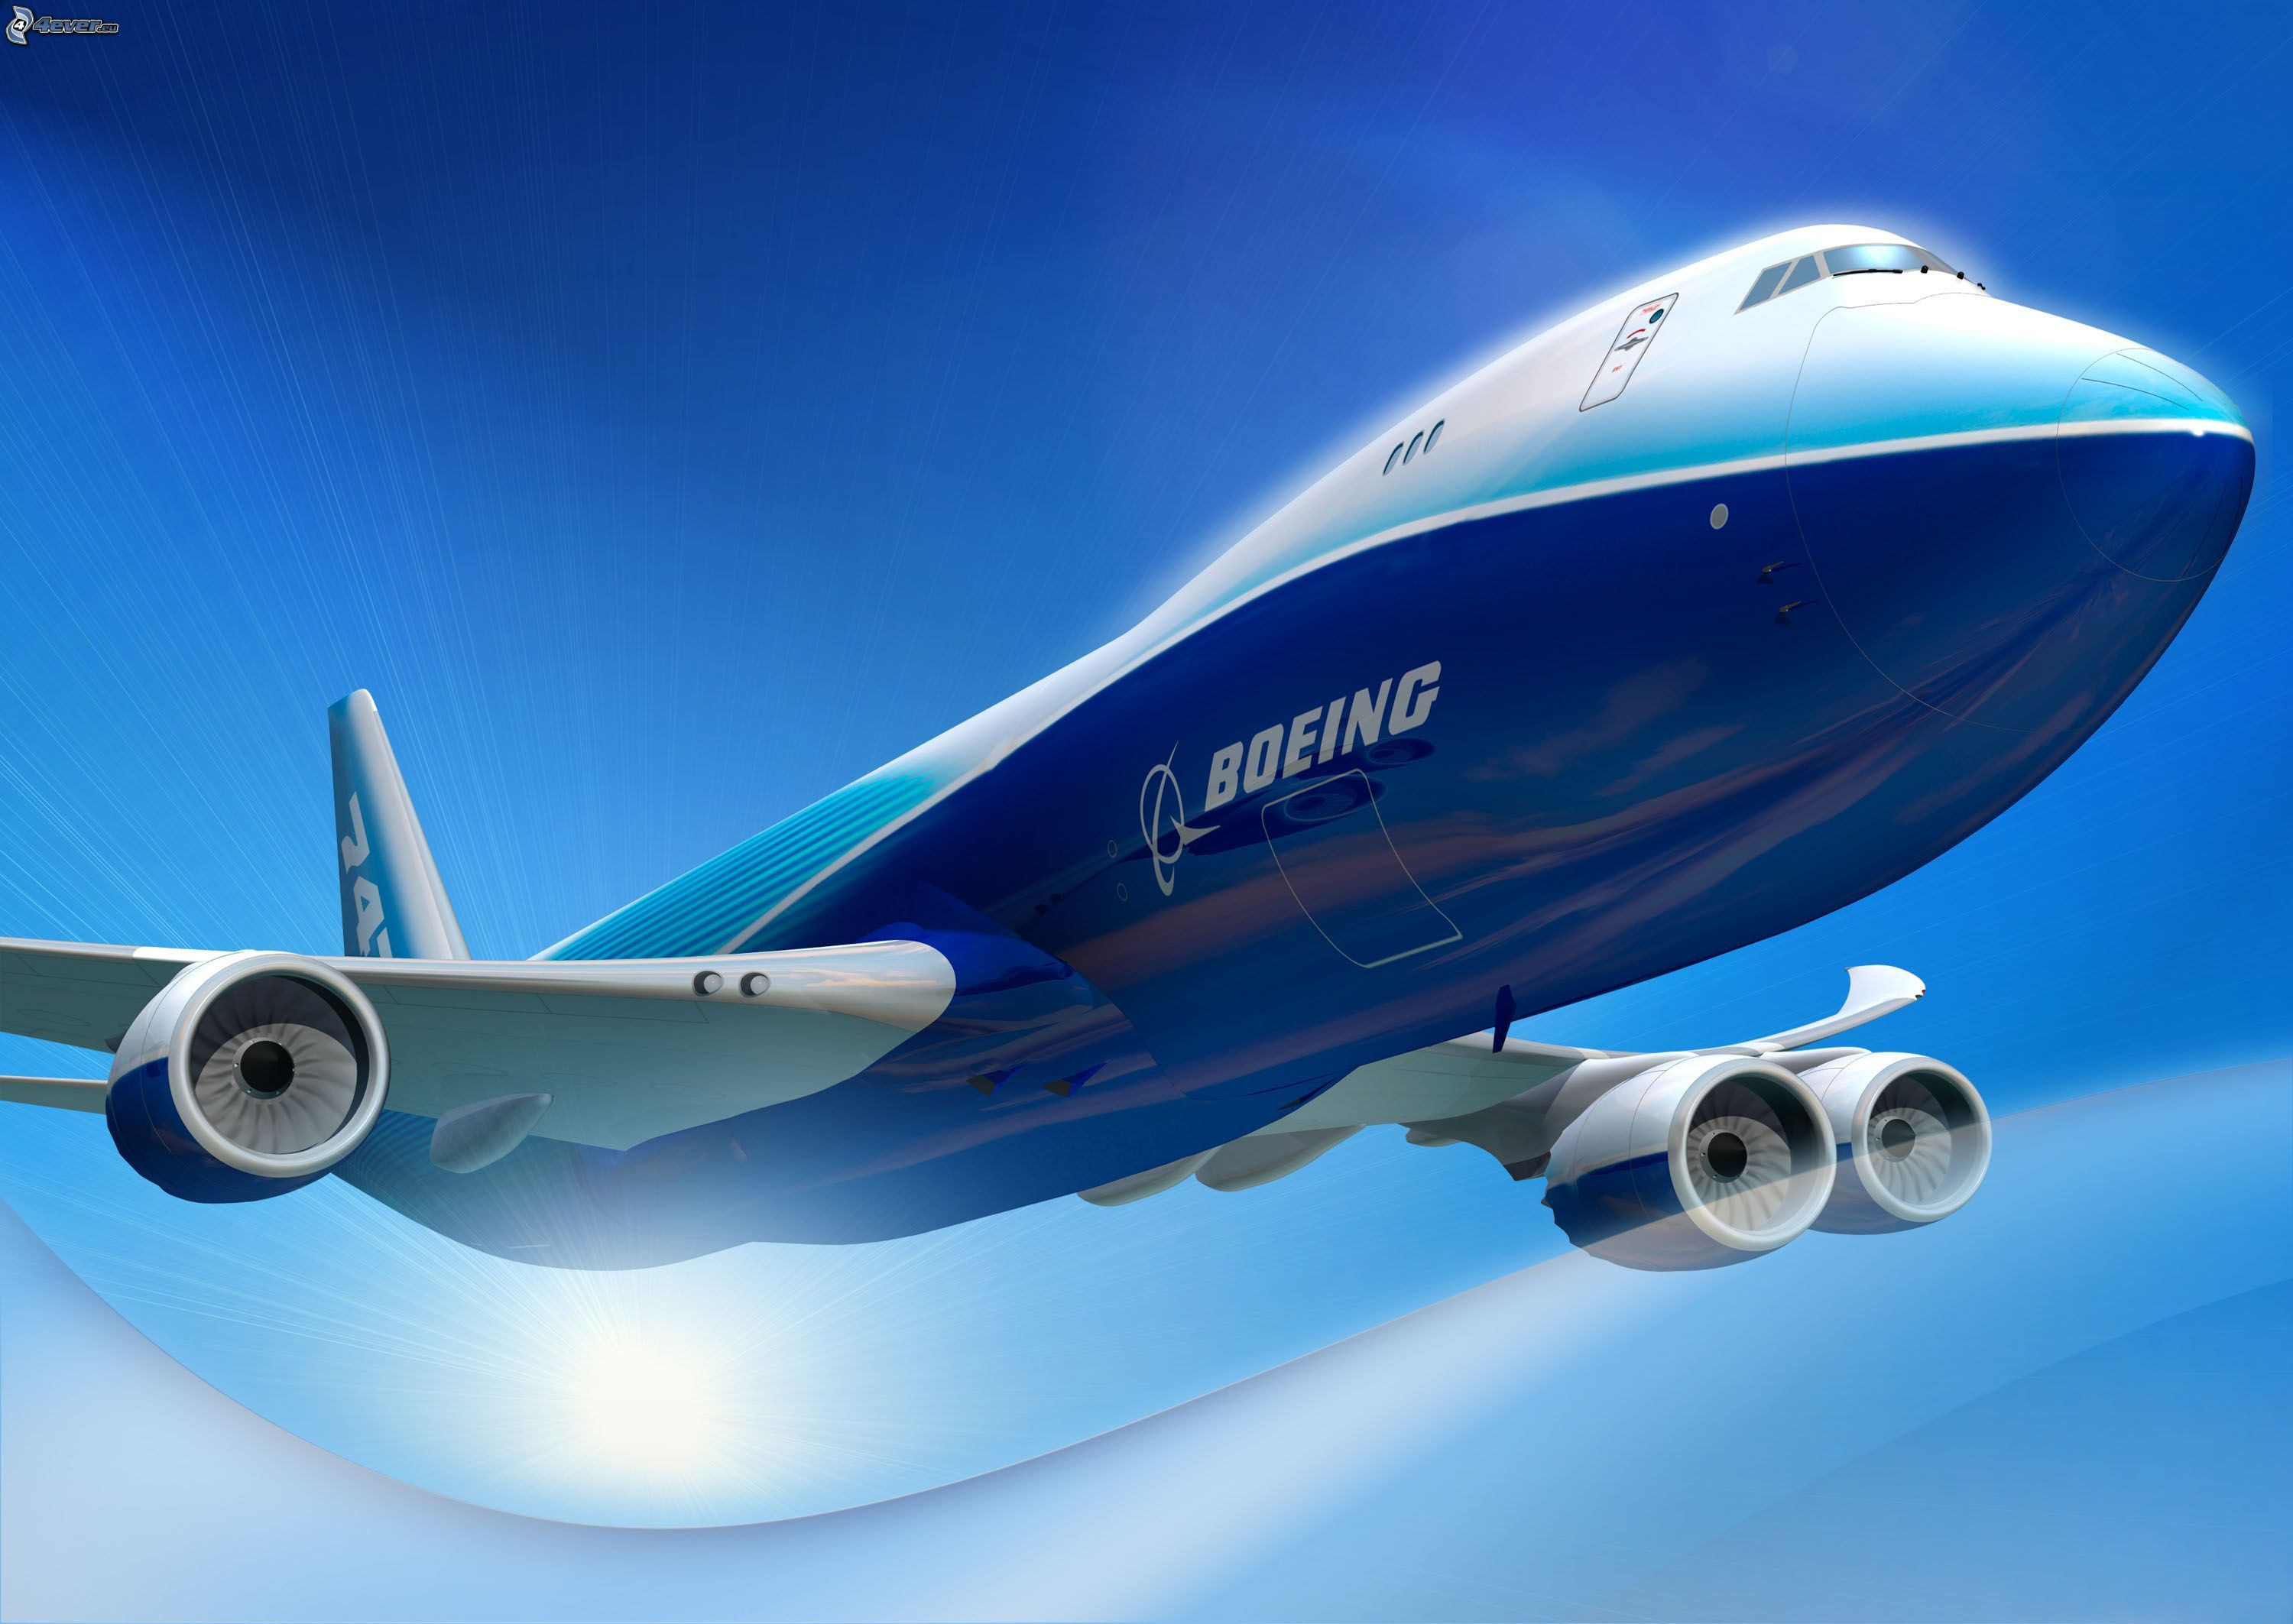 Boeing Airplane Boeing 747 Dreamliner